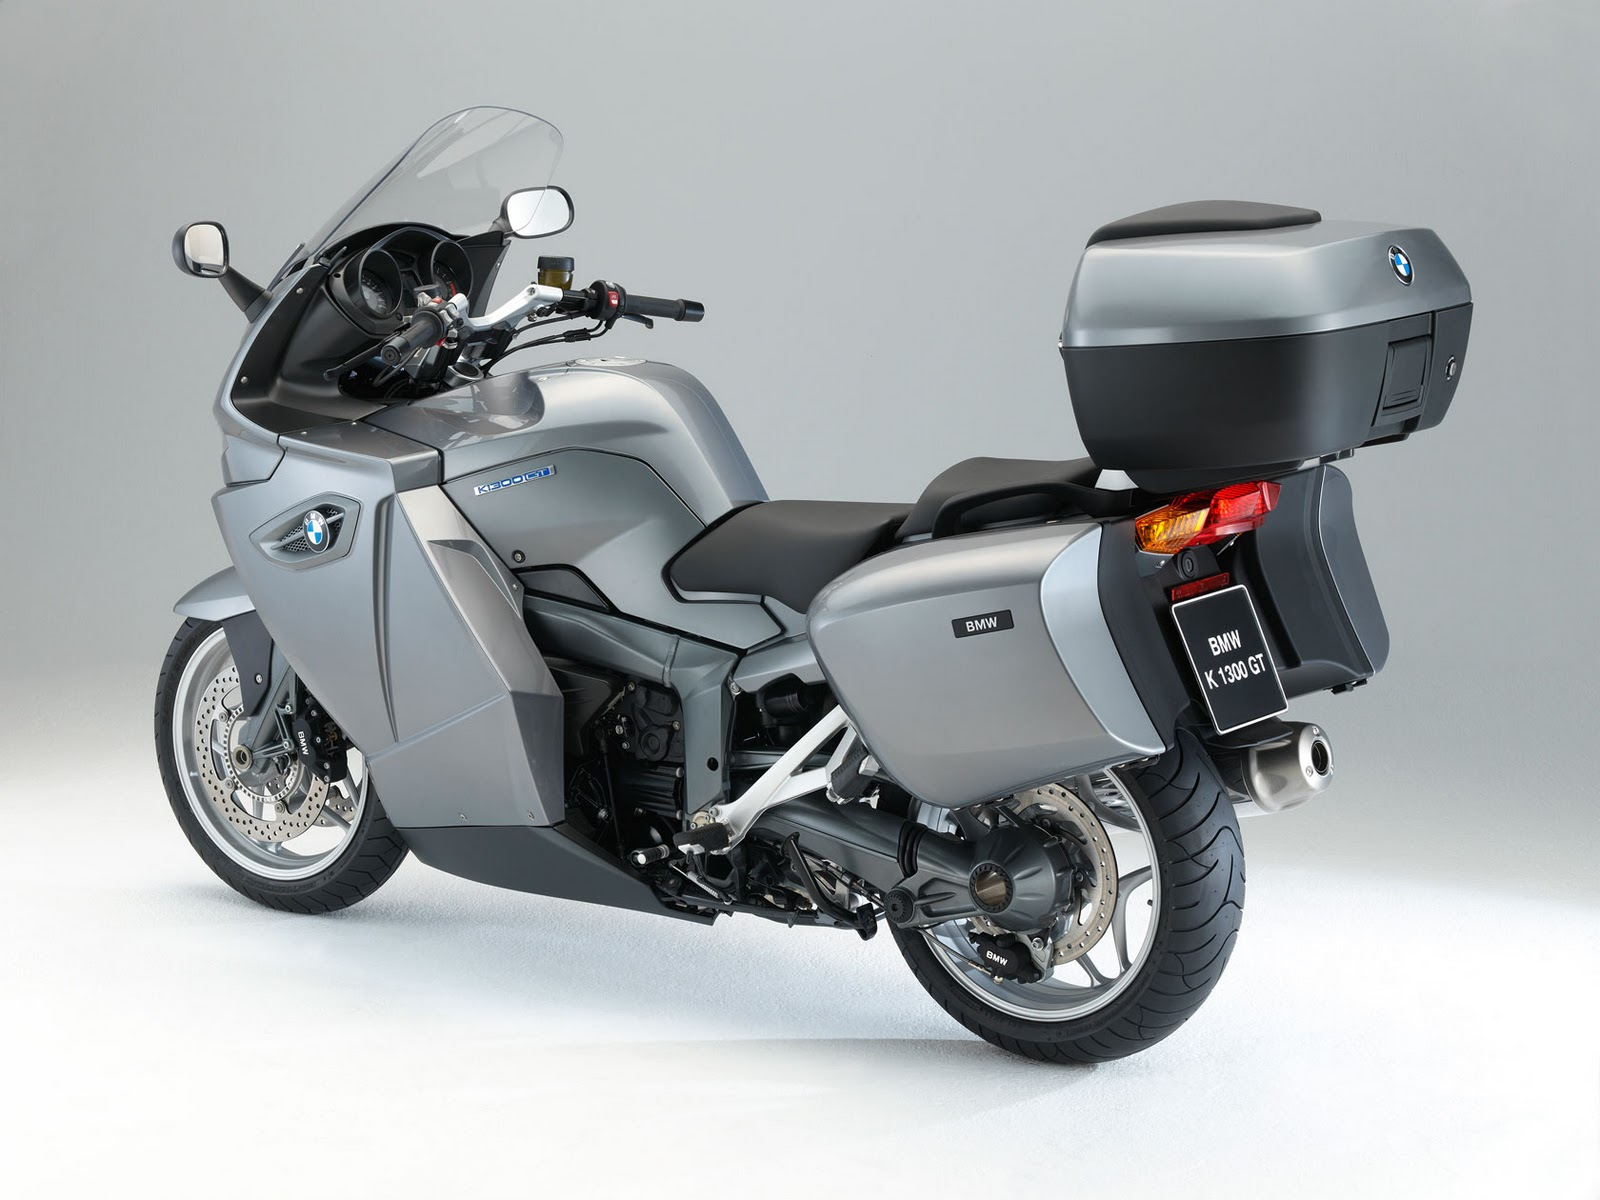 2011 Ural Snow Leopard Limited Edition #3